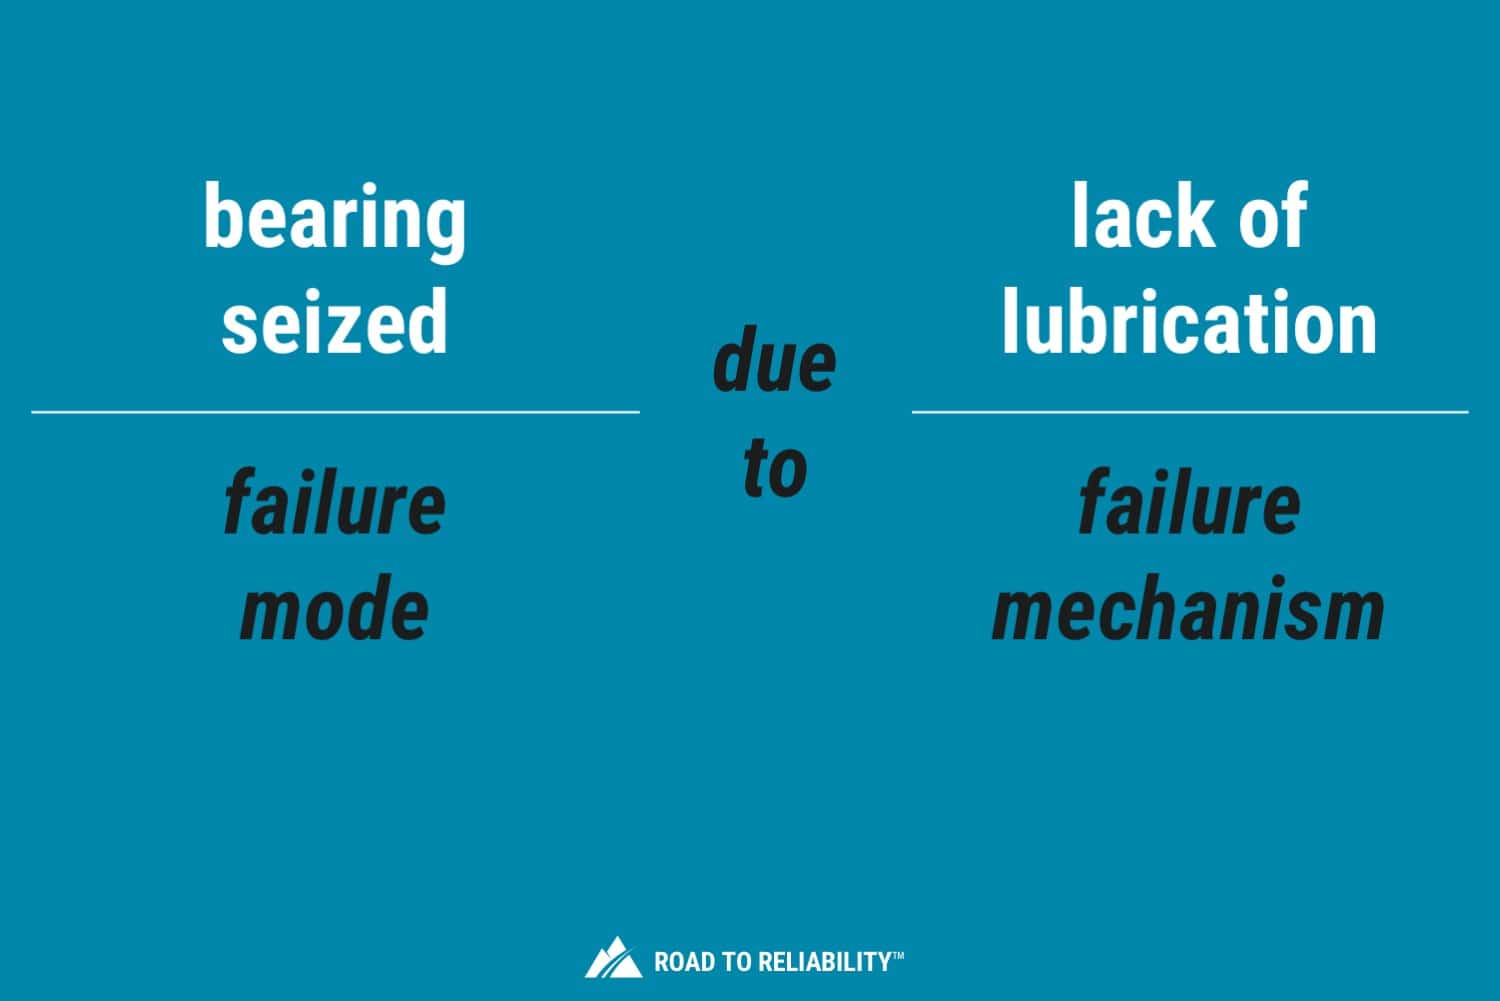 failure mode vs failure mechanism in failure mode and effects analysis